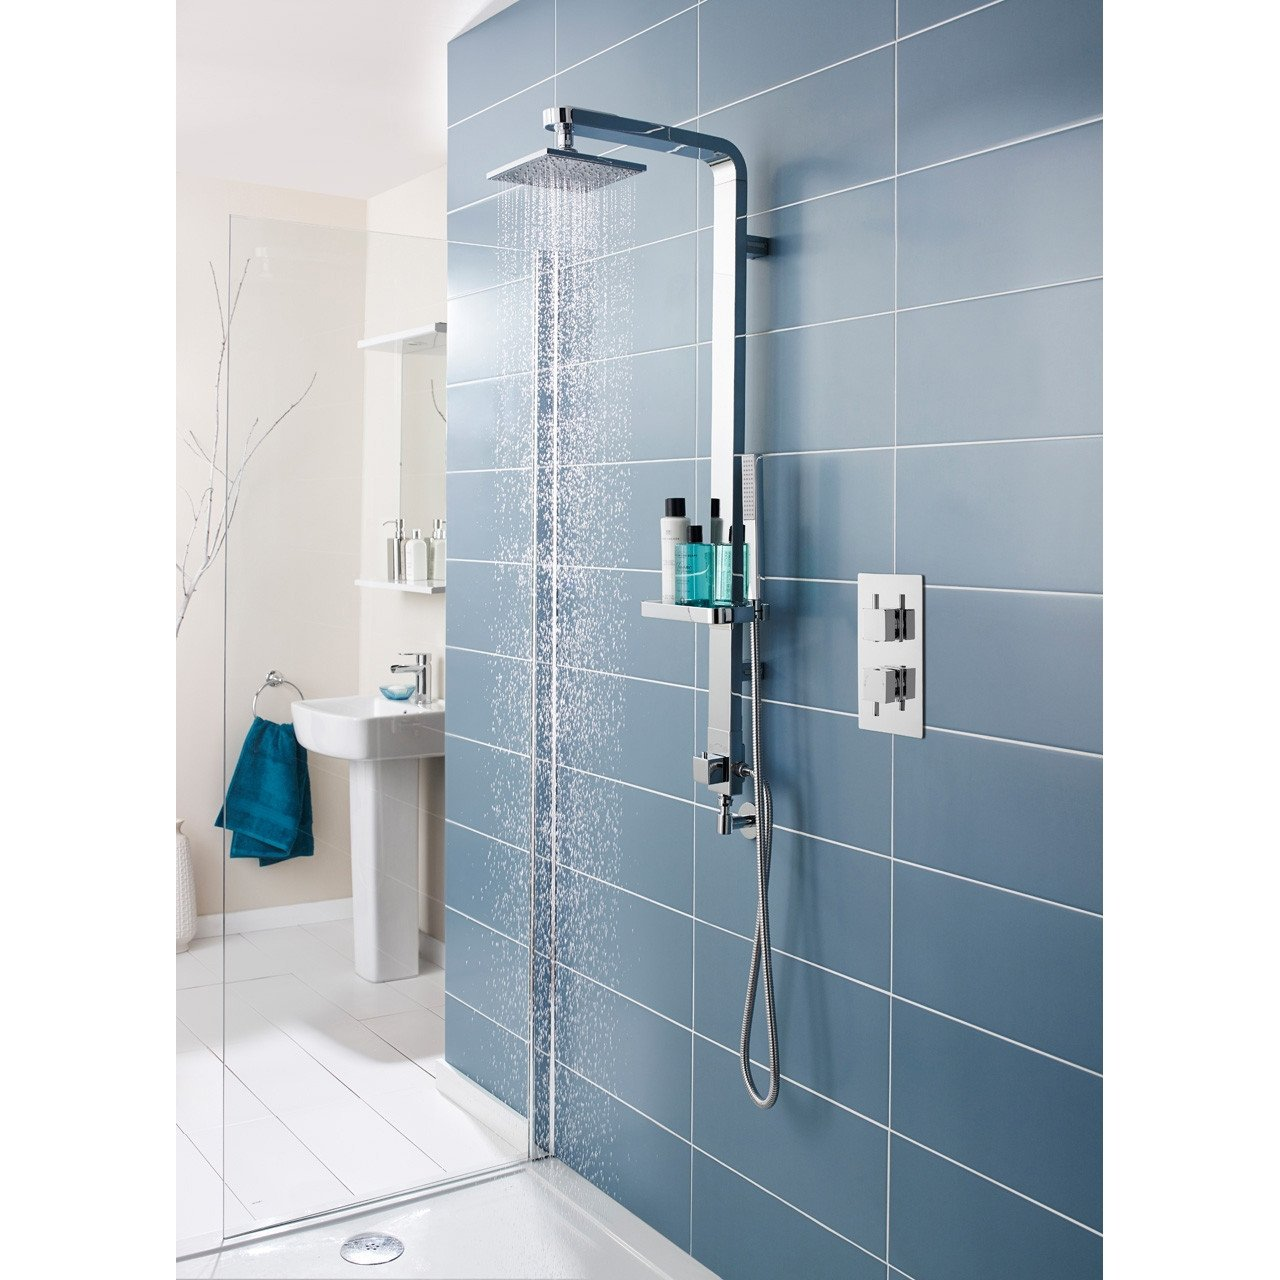 Ultra Twin Concealed Thermostatic Valve with Diverter - JTY302